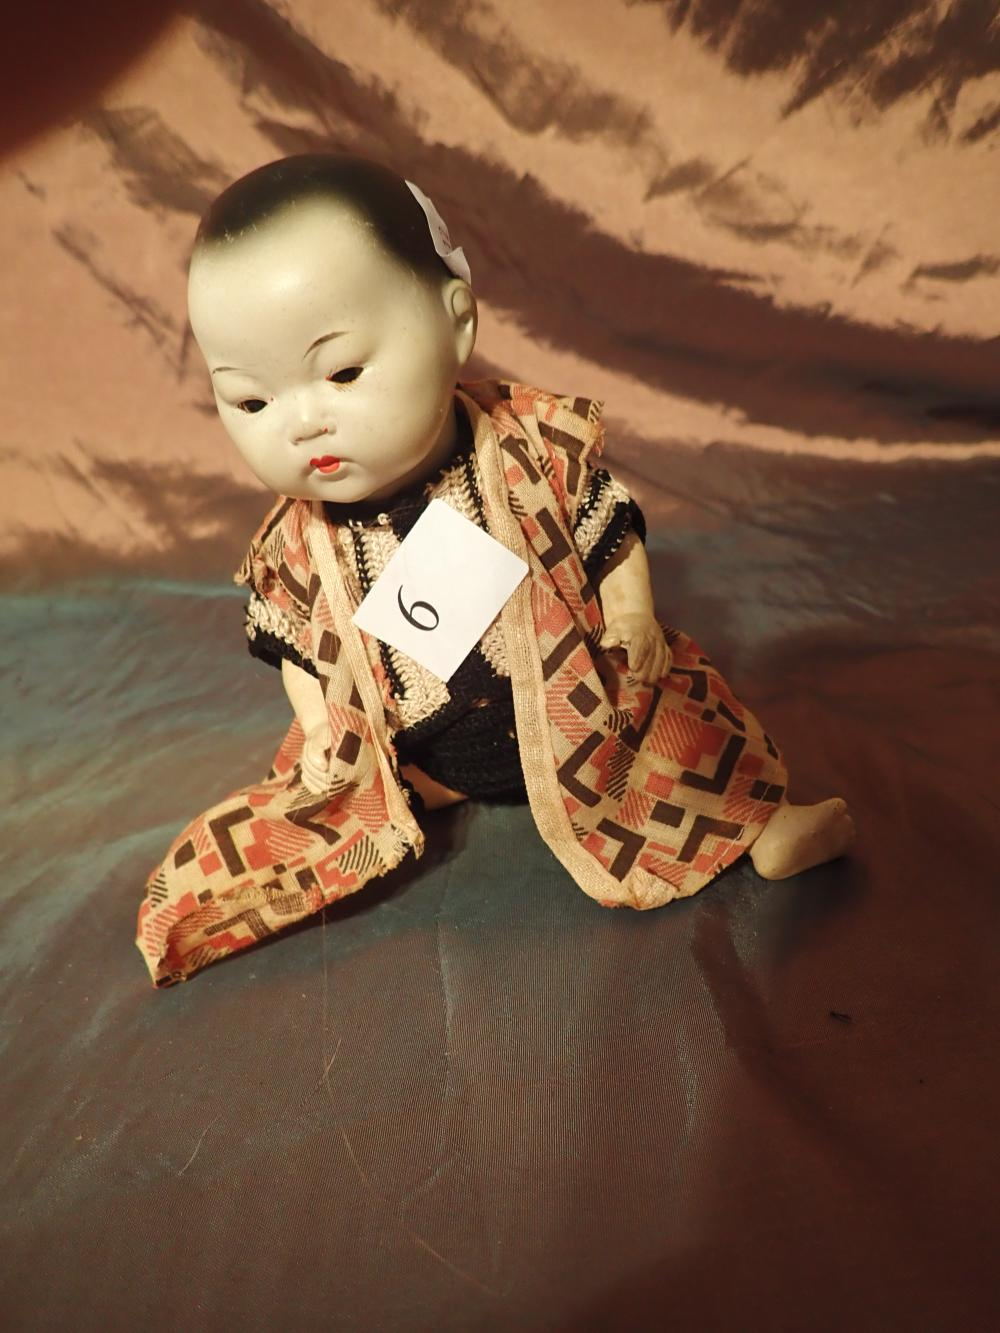 AM ORIENTAL GERMAN DOLL MARKED 353/40K - DRESSED IN ORIENTAL STYLE CLOTHES - 8 1/2 INCHES LONG - CRACK TO BACK OF BODY